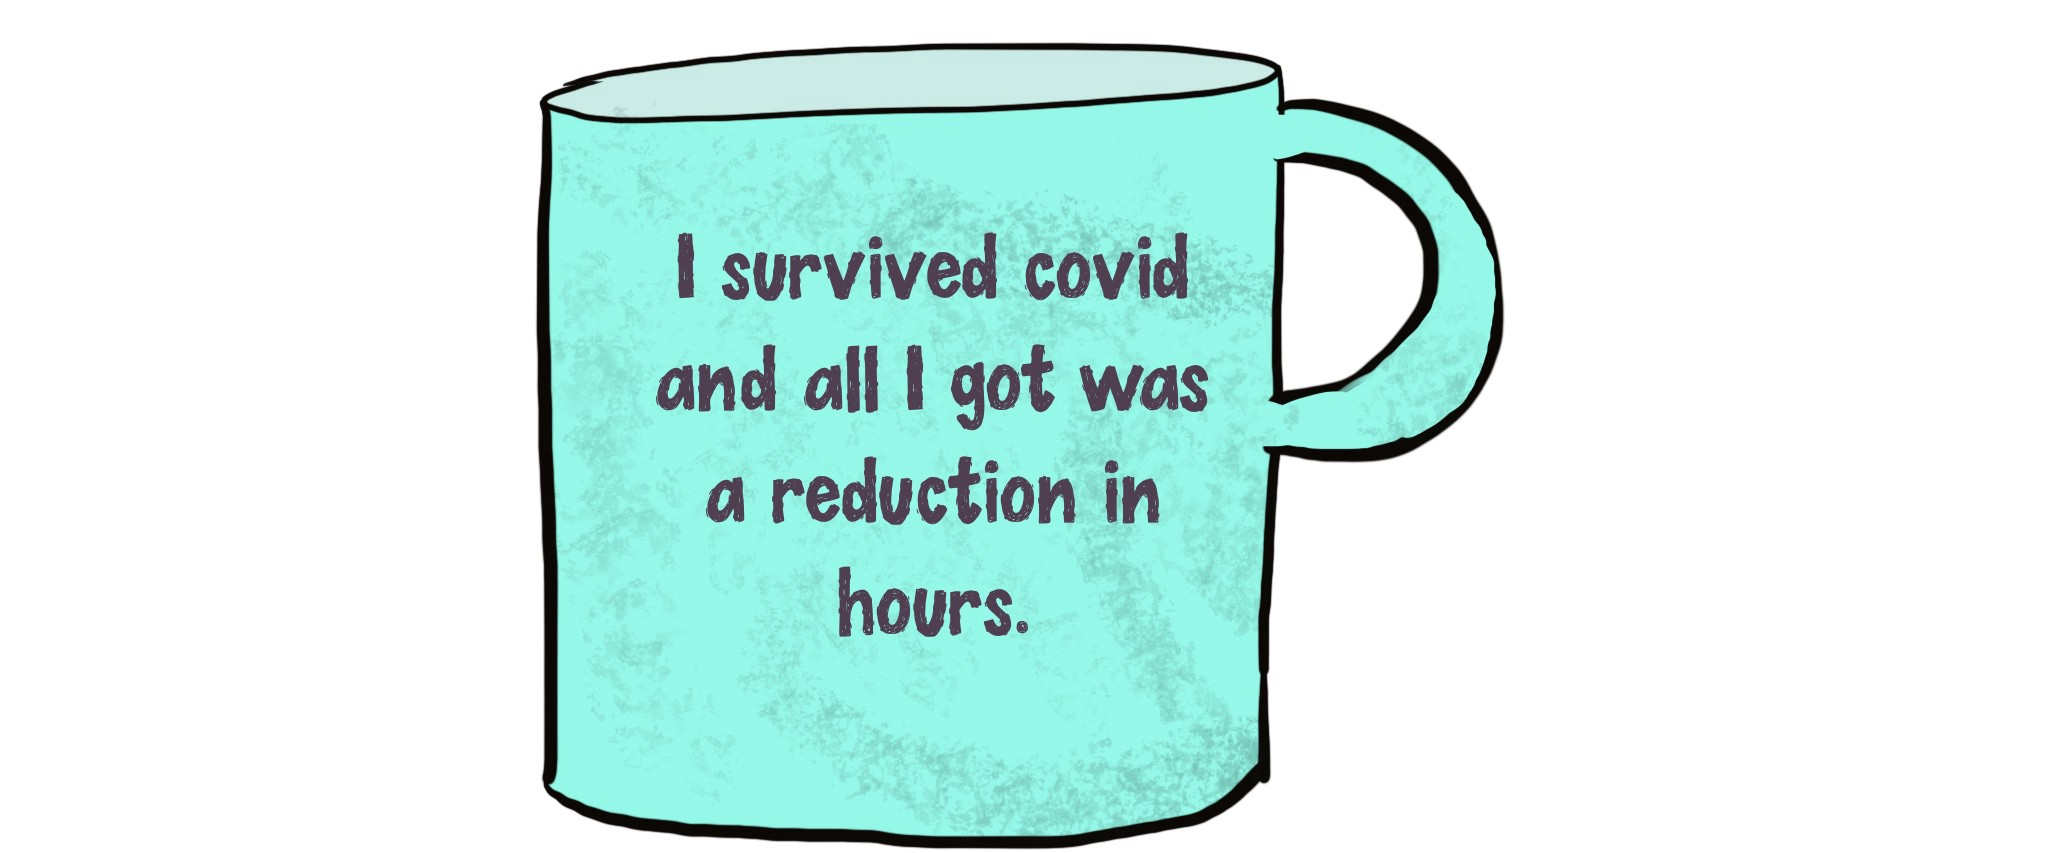 Realistic Coffee Mug Quotes For Summer 2020 By Kyrie Gray Jane Austen S Wastebasket Medium